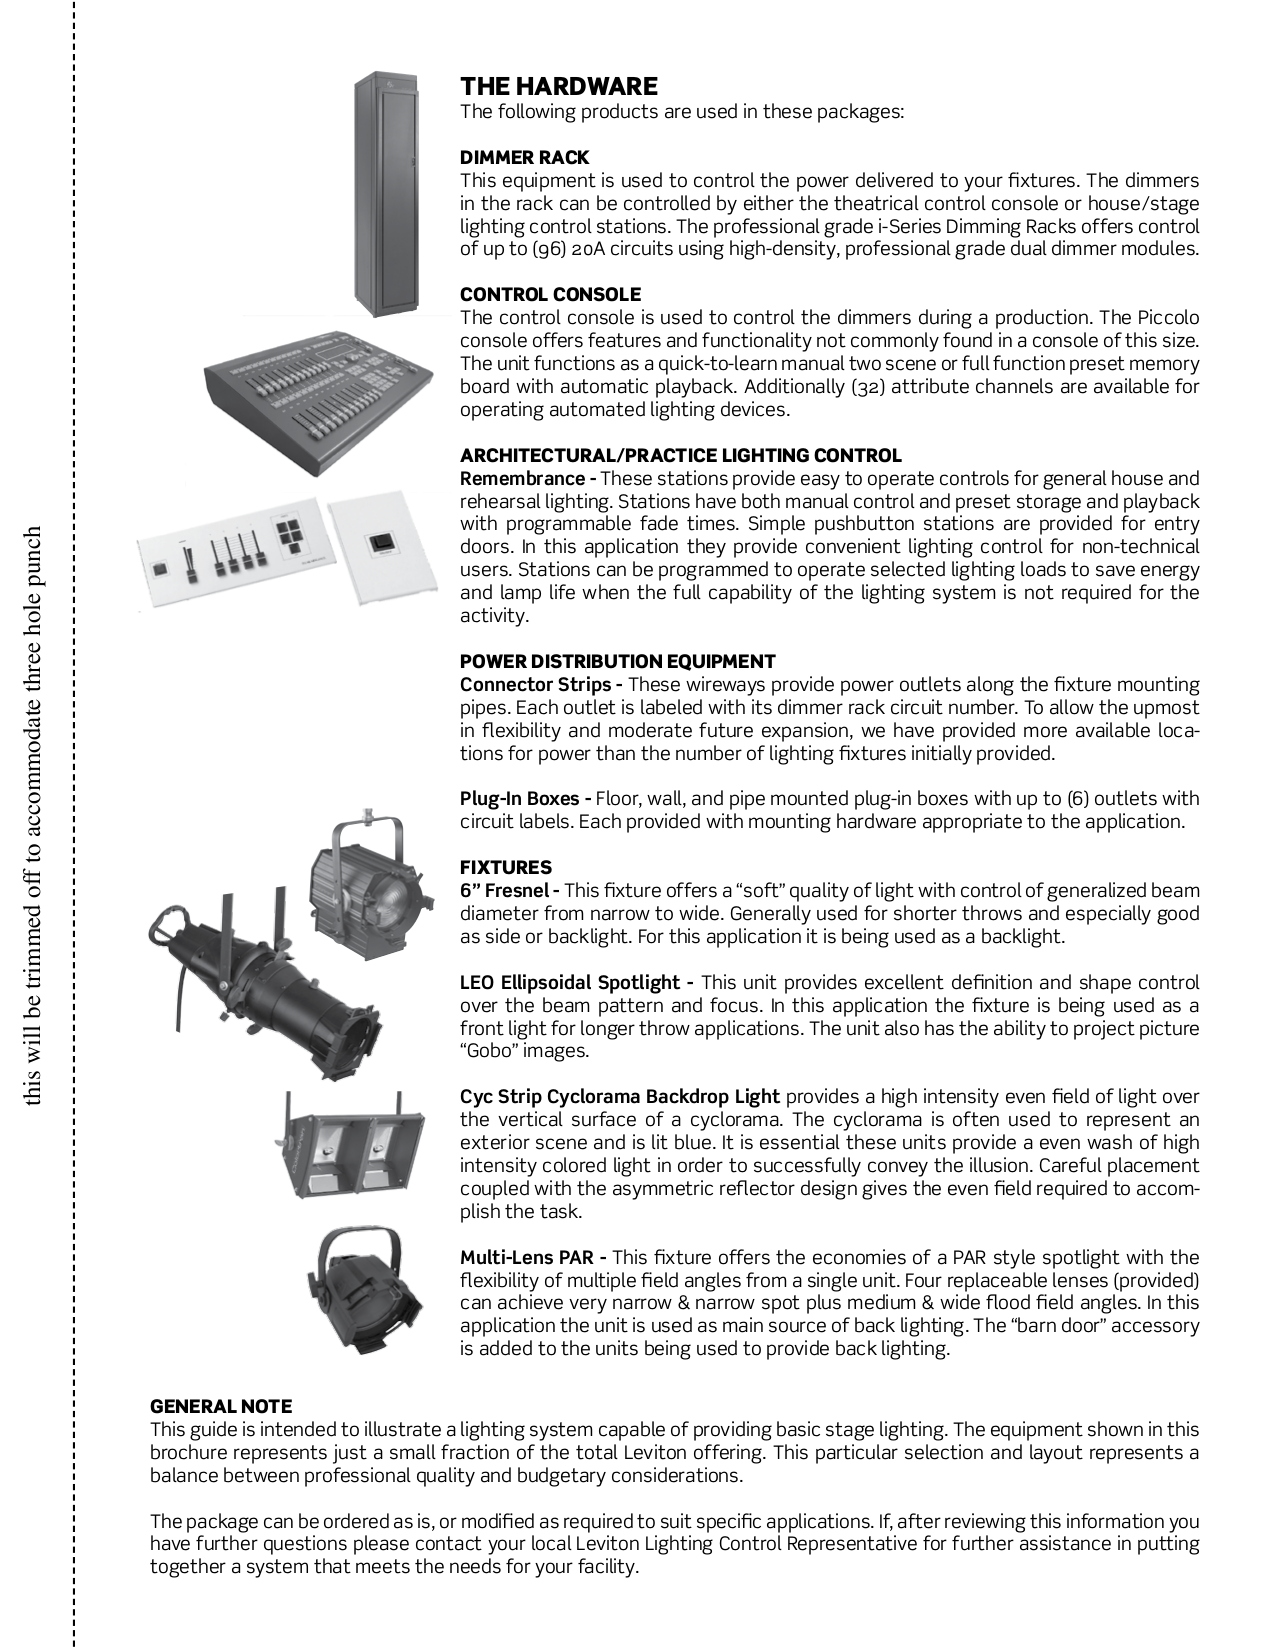 Download Free Pdf For Leviton Lel36 Spotlights Other Manual Black Box Stage Diagram Theater Would Need To Be Larger